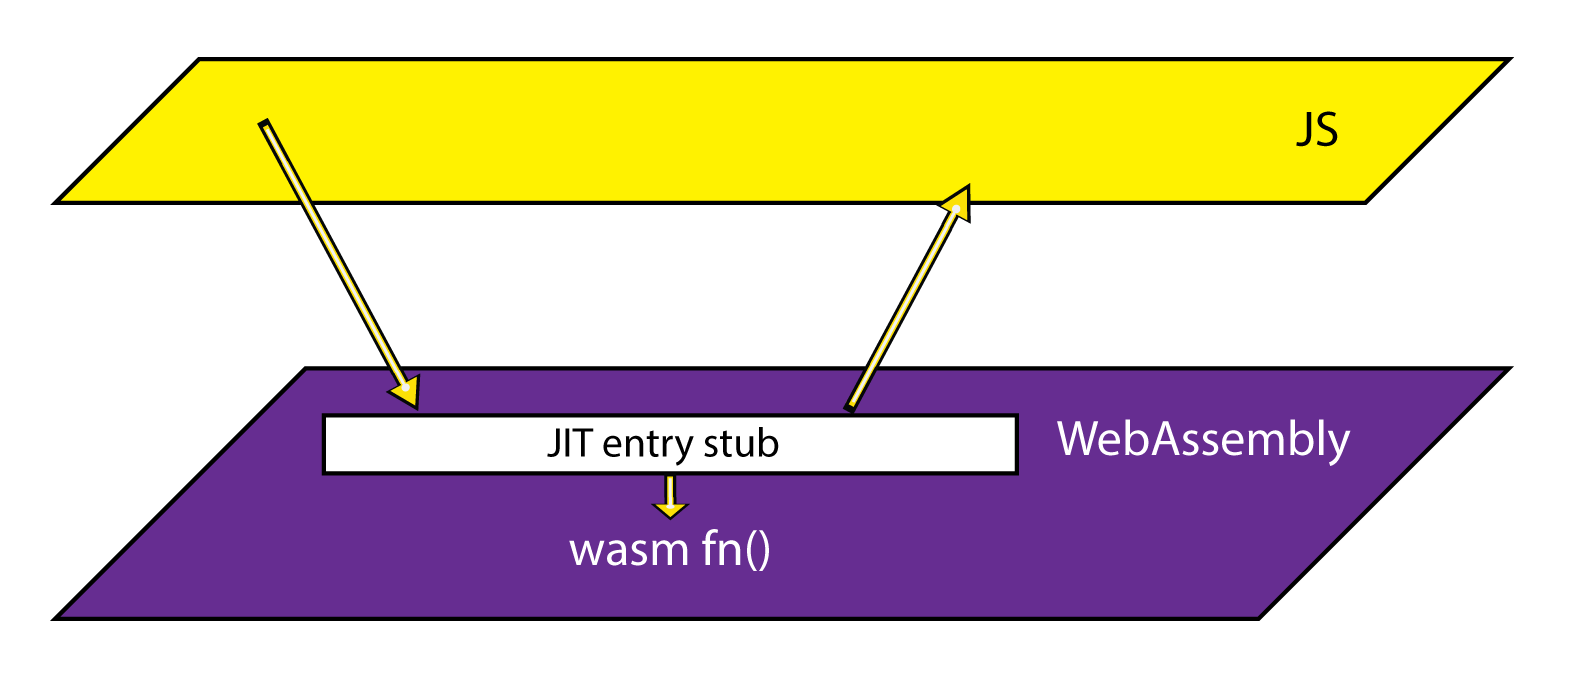 Diagram showing JIT entry stub